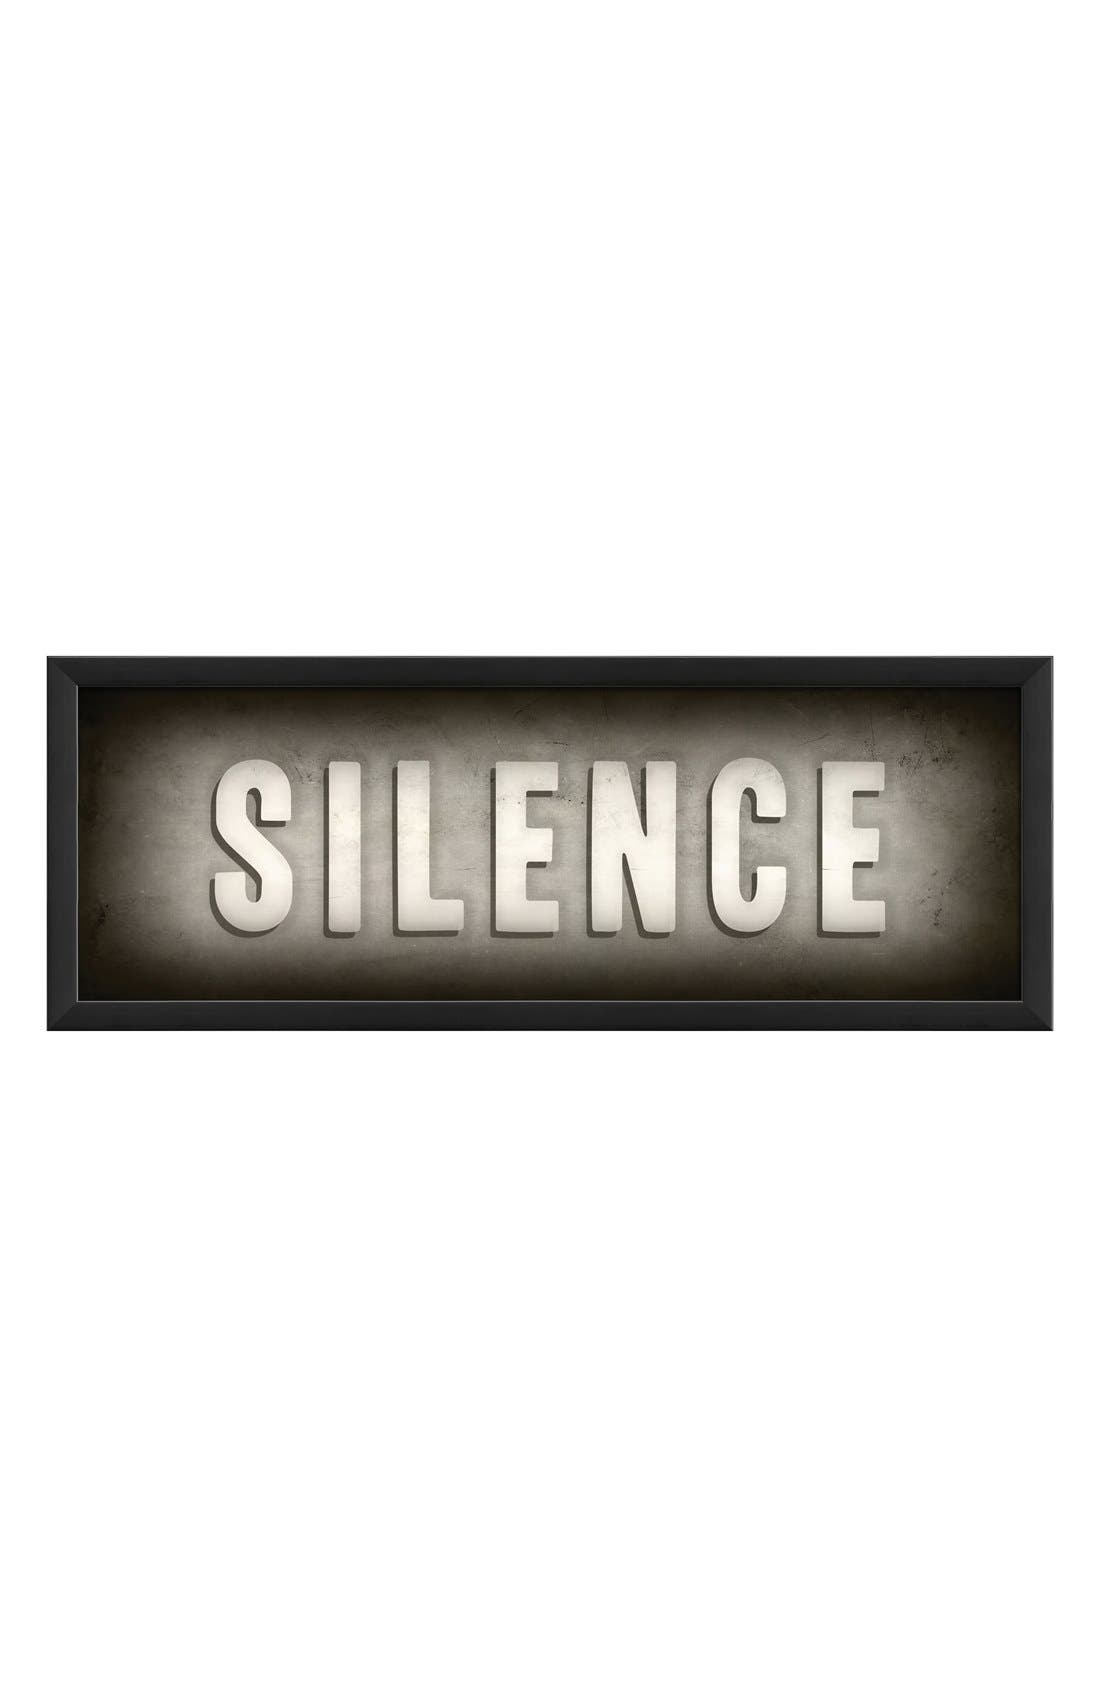 Main Image - Spicher and Company 'Silence' Vintage Look Theater Sign Artwork